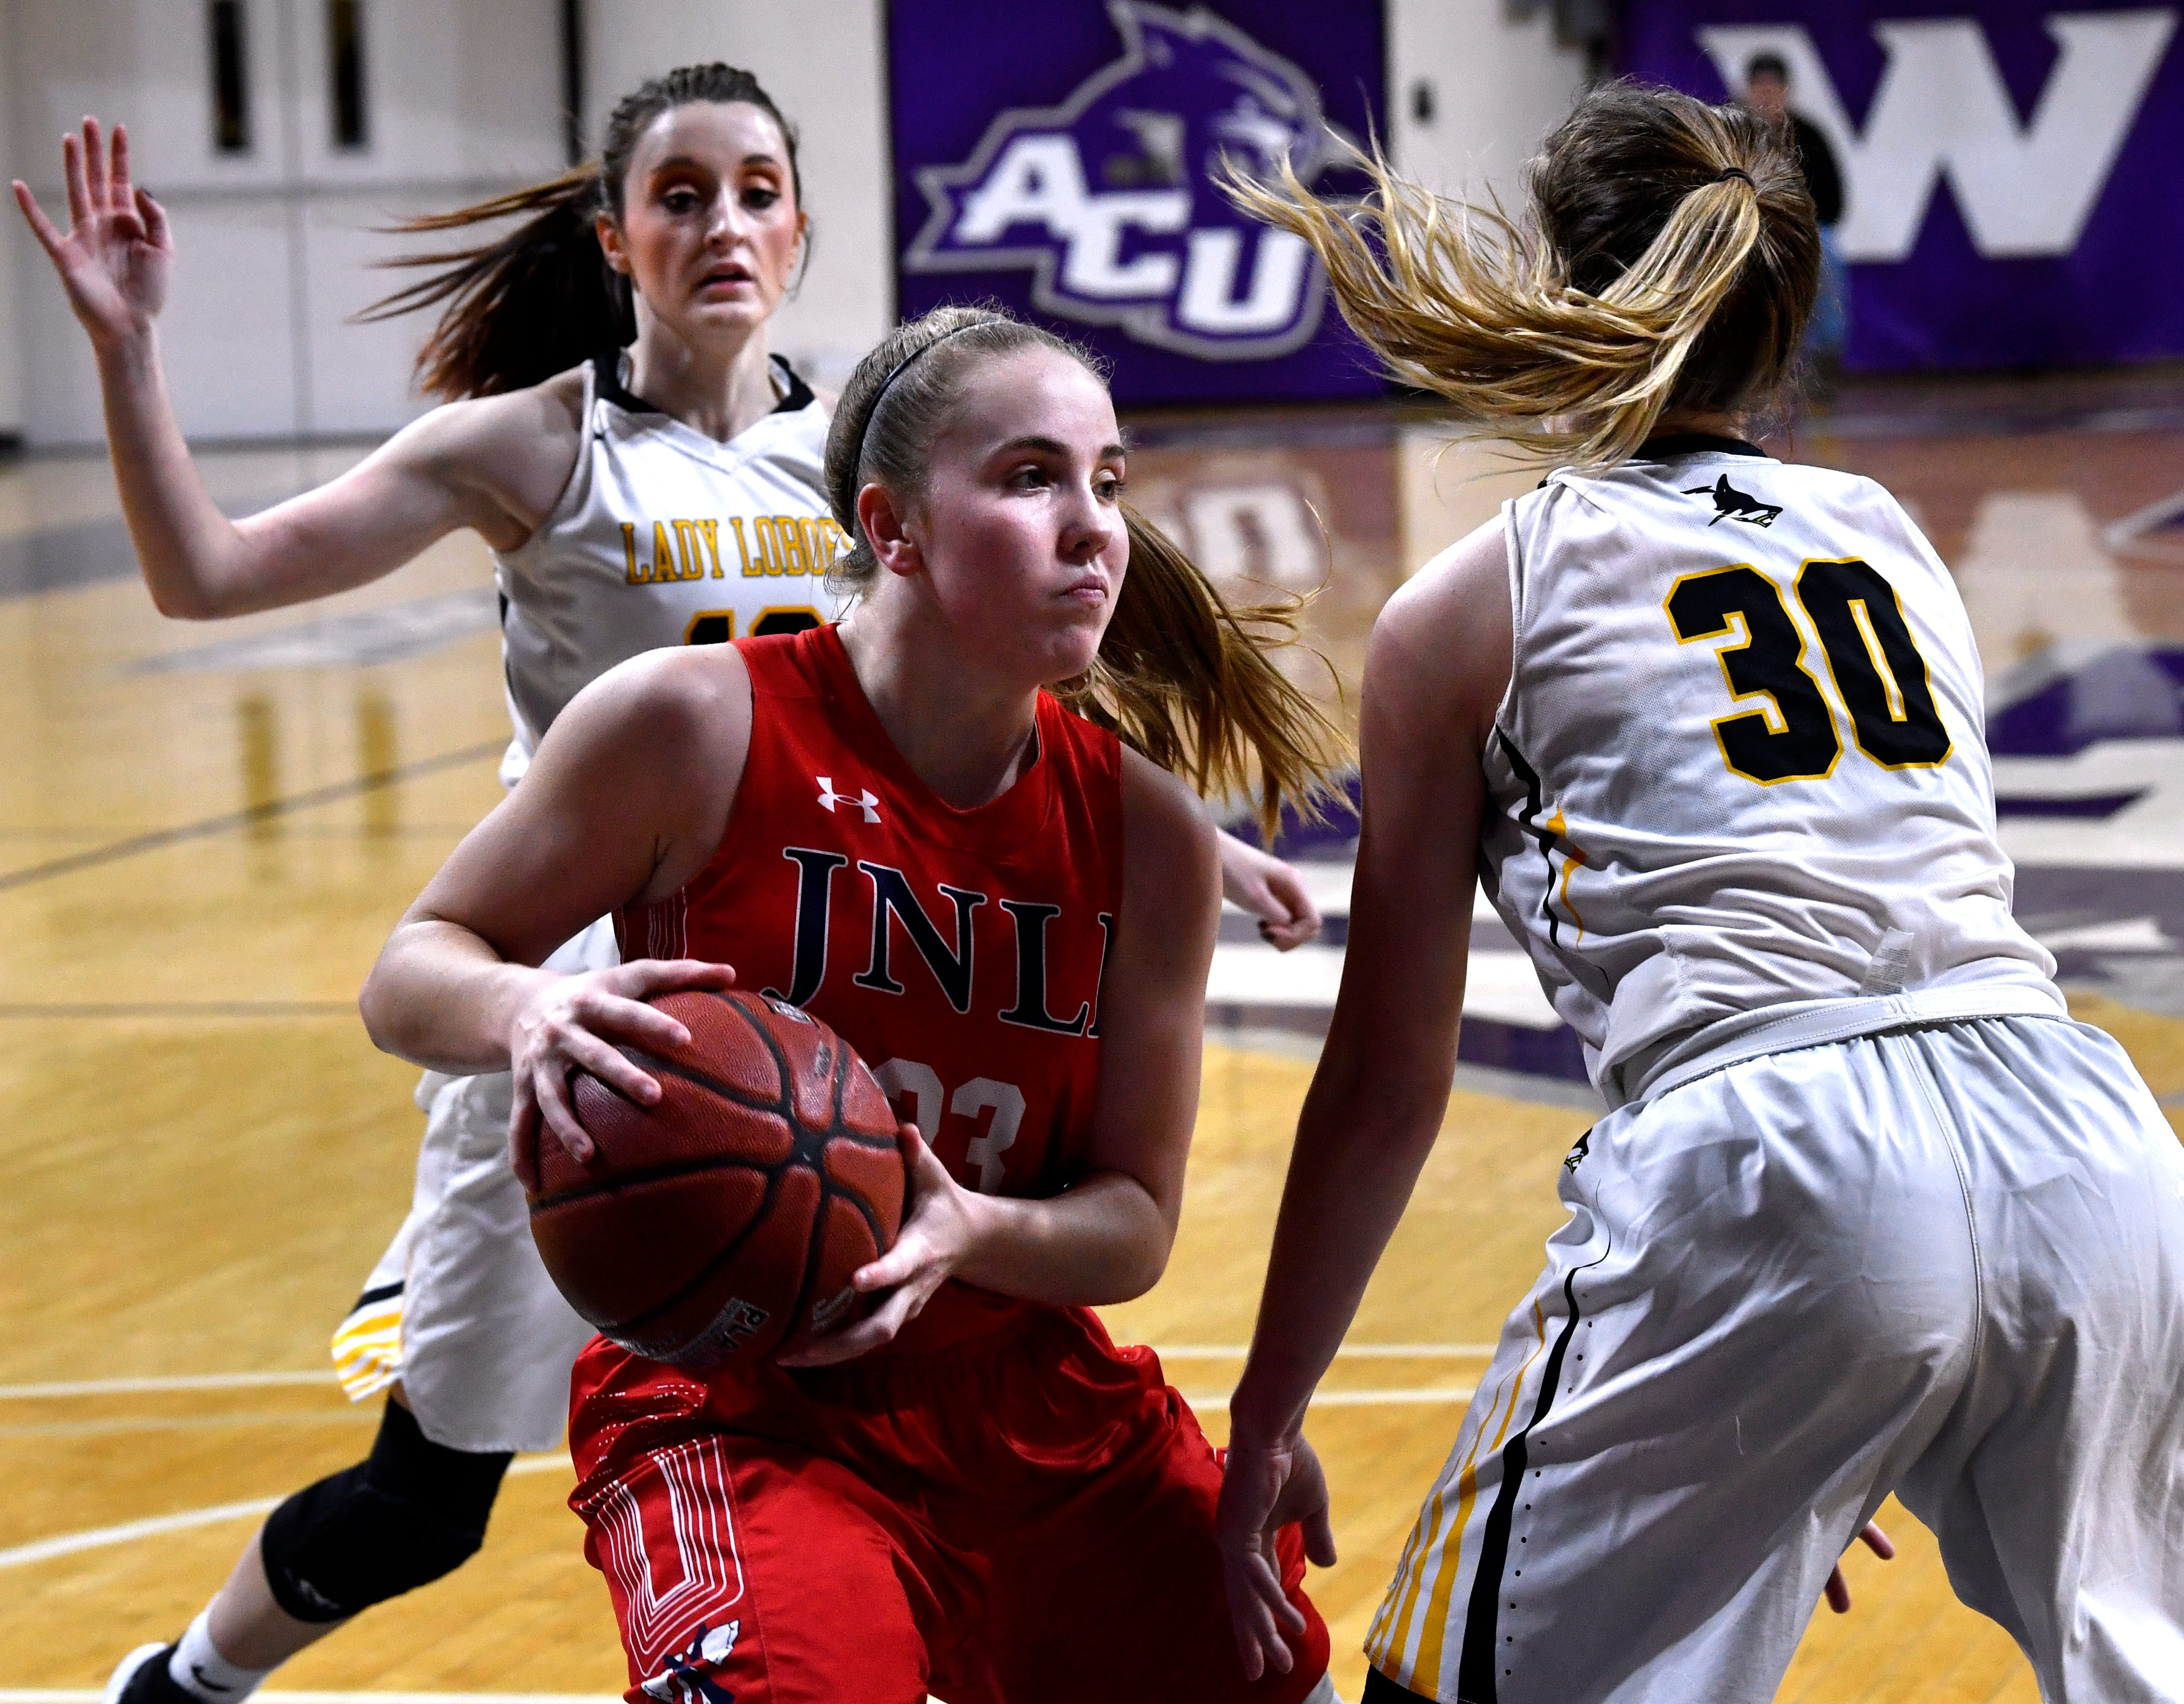 Jim Ned's Brooke Galvin steps around Cisco's Savannah Dycus during Tuesday's Region 1 3A basketball all quarter-finals at Abilene Christian University Feb. 19, 2019. Final score was 46-31, Jim Ned.